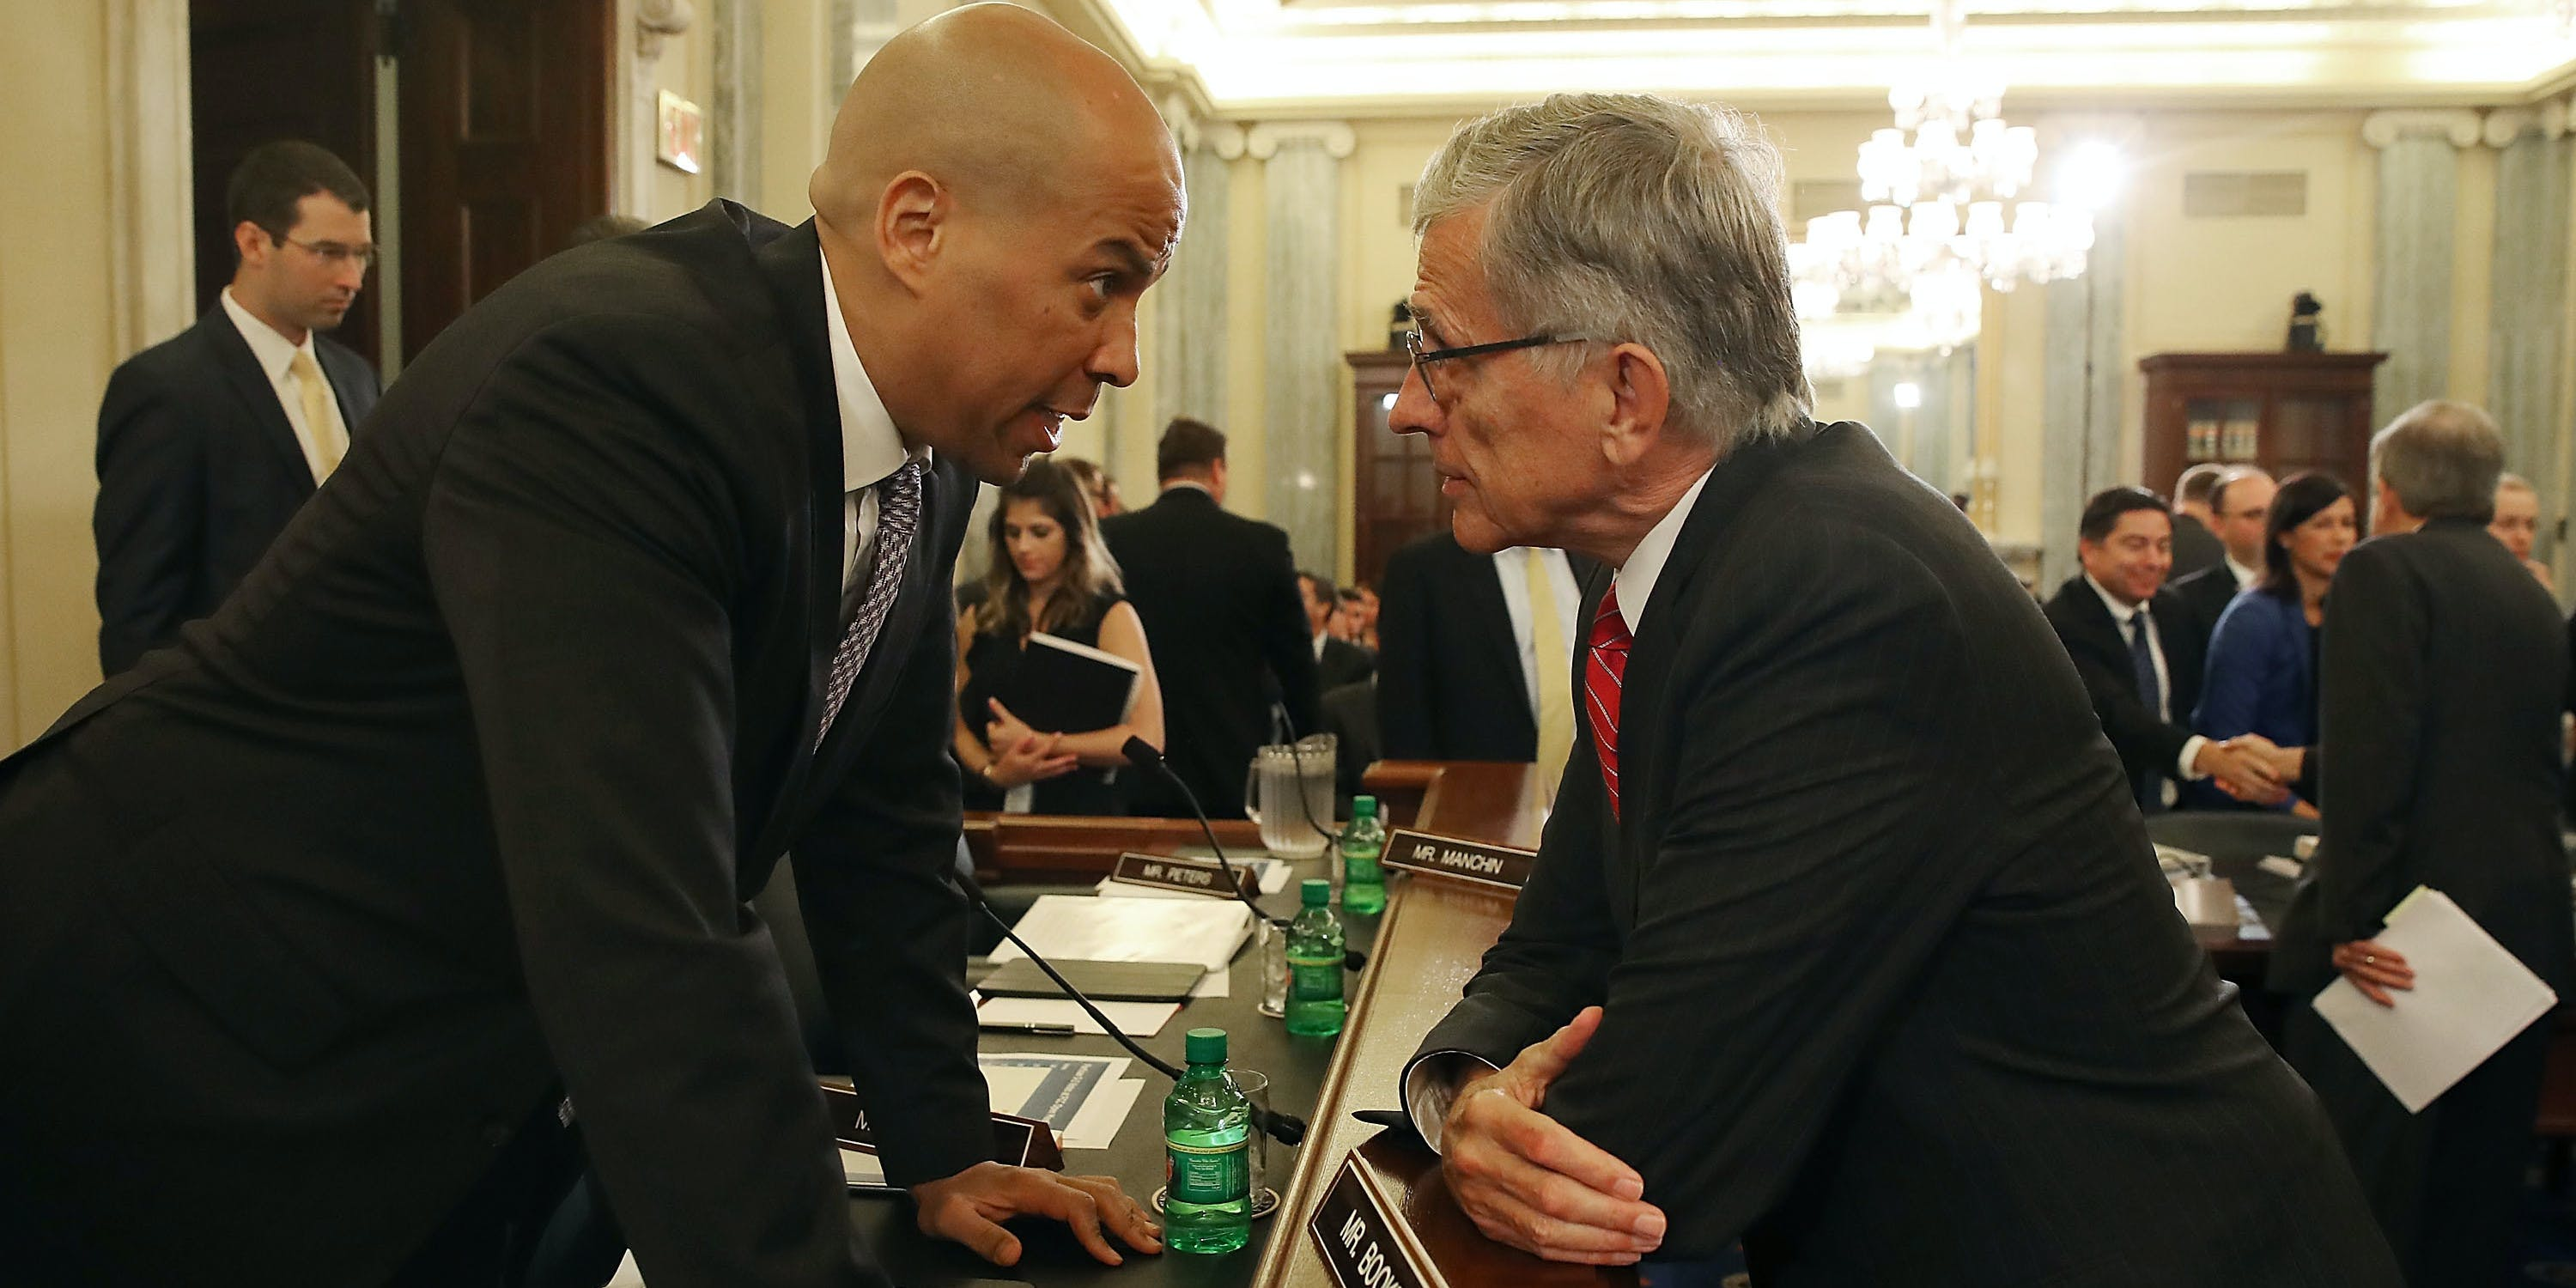 FCC Chairman Tom Wheeler (R), talks with Sen. Cory Booker (D-NJ), before the start of a Senate Commerce, Science and Transportation Committee hearing on Capitol Hill, September 15, 2016 in Washington, DC. The committee heard testimony on oversight of the Federal Communications Commission.